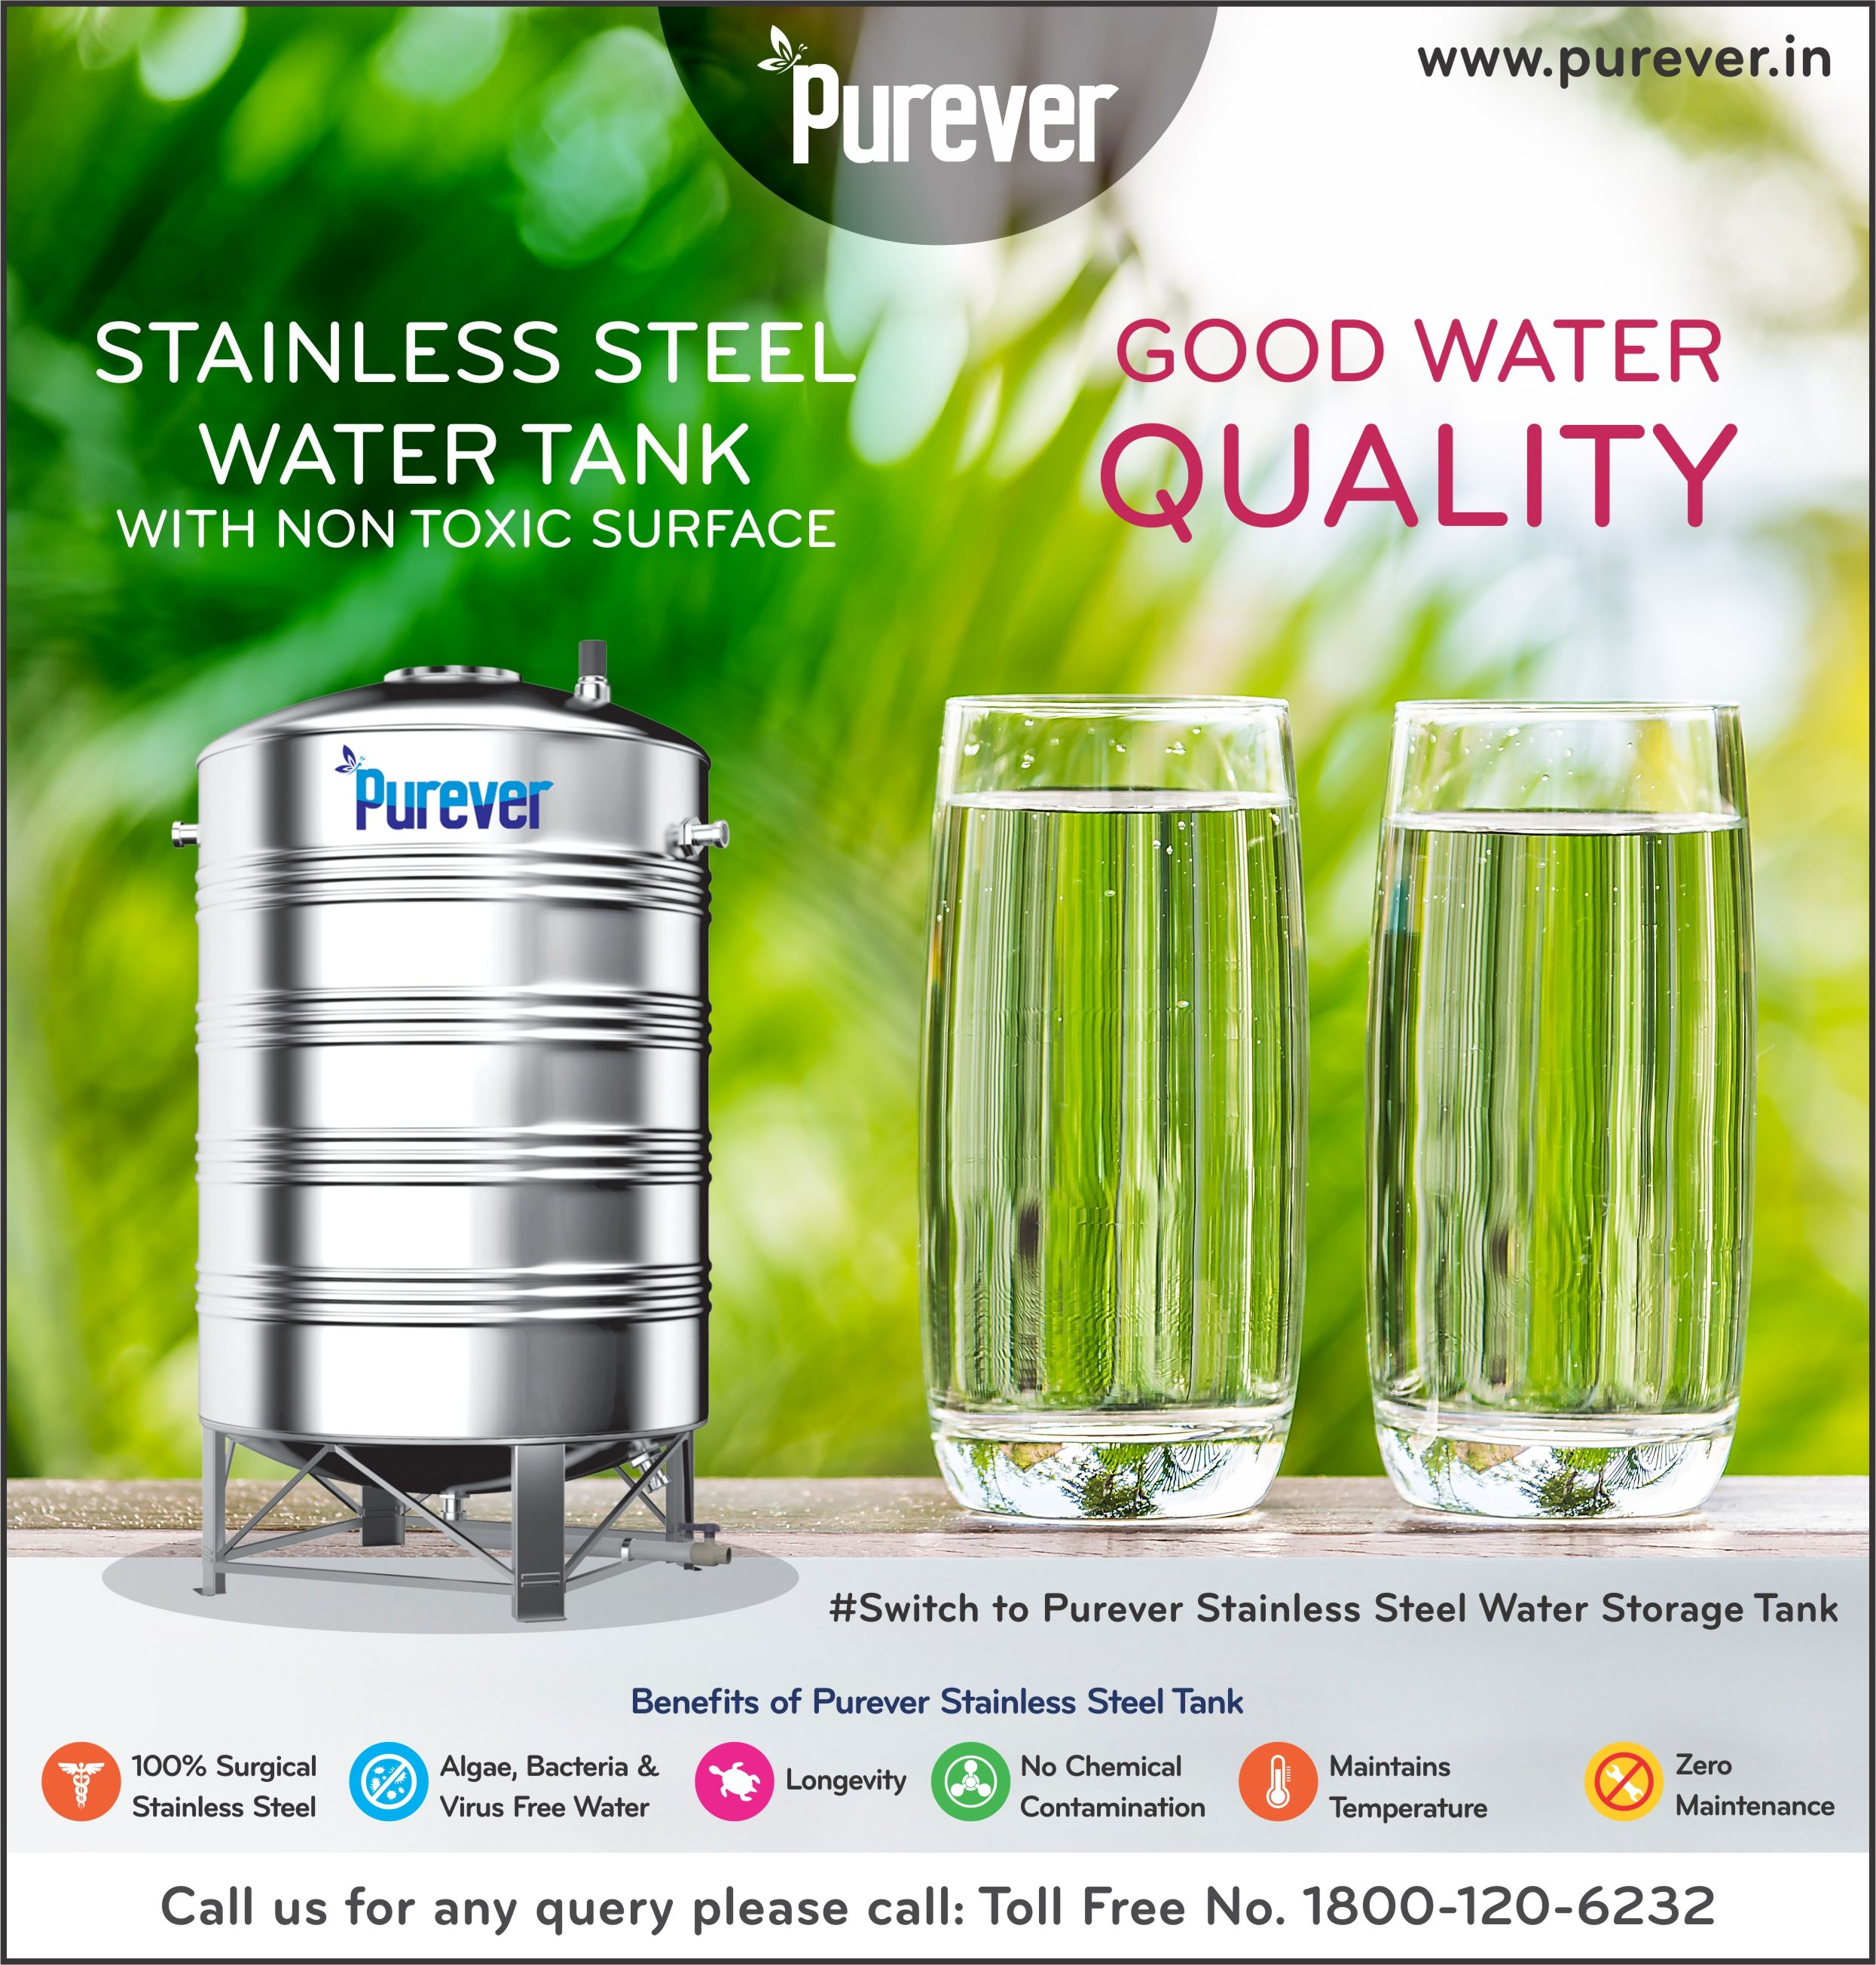 Purever Stainless Steel Water Tank Non Toxic Surface Good Water Quality Switch To Purever Stainless Steel Steel Water Tanks Water Storage Tanks Water Tank